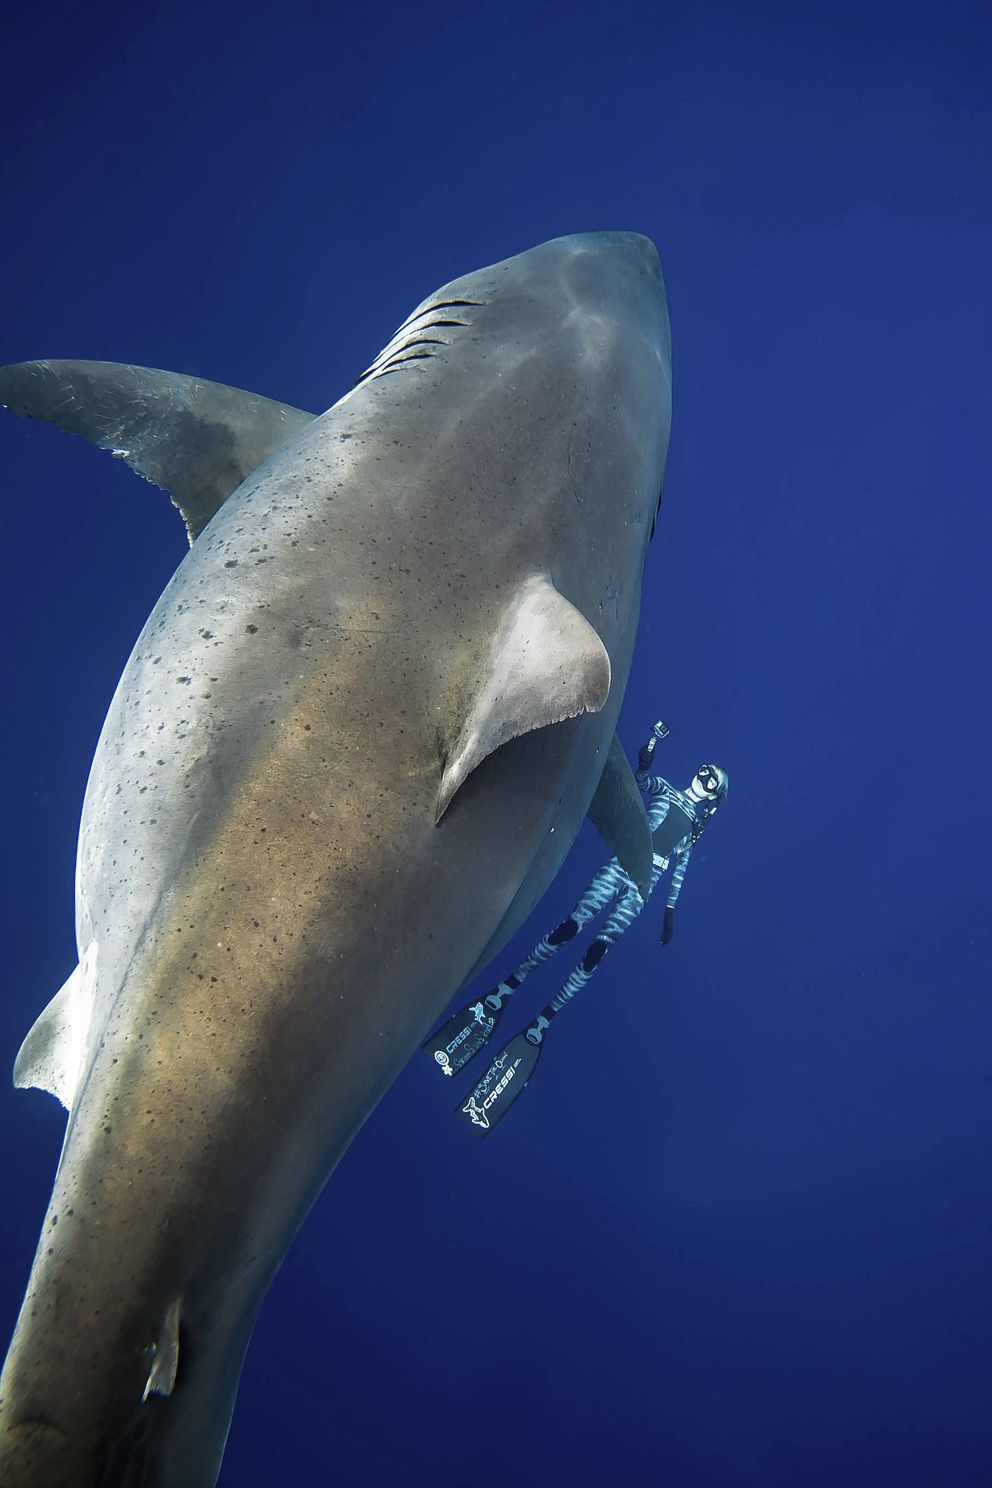 In this Jan. 15, 2019 photo provided by Juan Oliphant, Ocean Ramsey, a shark researcher and advocate, swims with a large great white shark off the shore of Oahu. Ramsey and Oliphant, two shark researchers, came face-to-face with what could be one of the largest great whites ever recorded. They are using their encounter as an opportunity push for legislation that would protect sharks in Hawaii. (Juan Oliphant via AP)